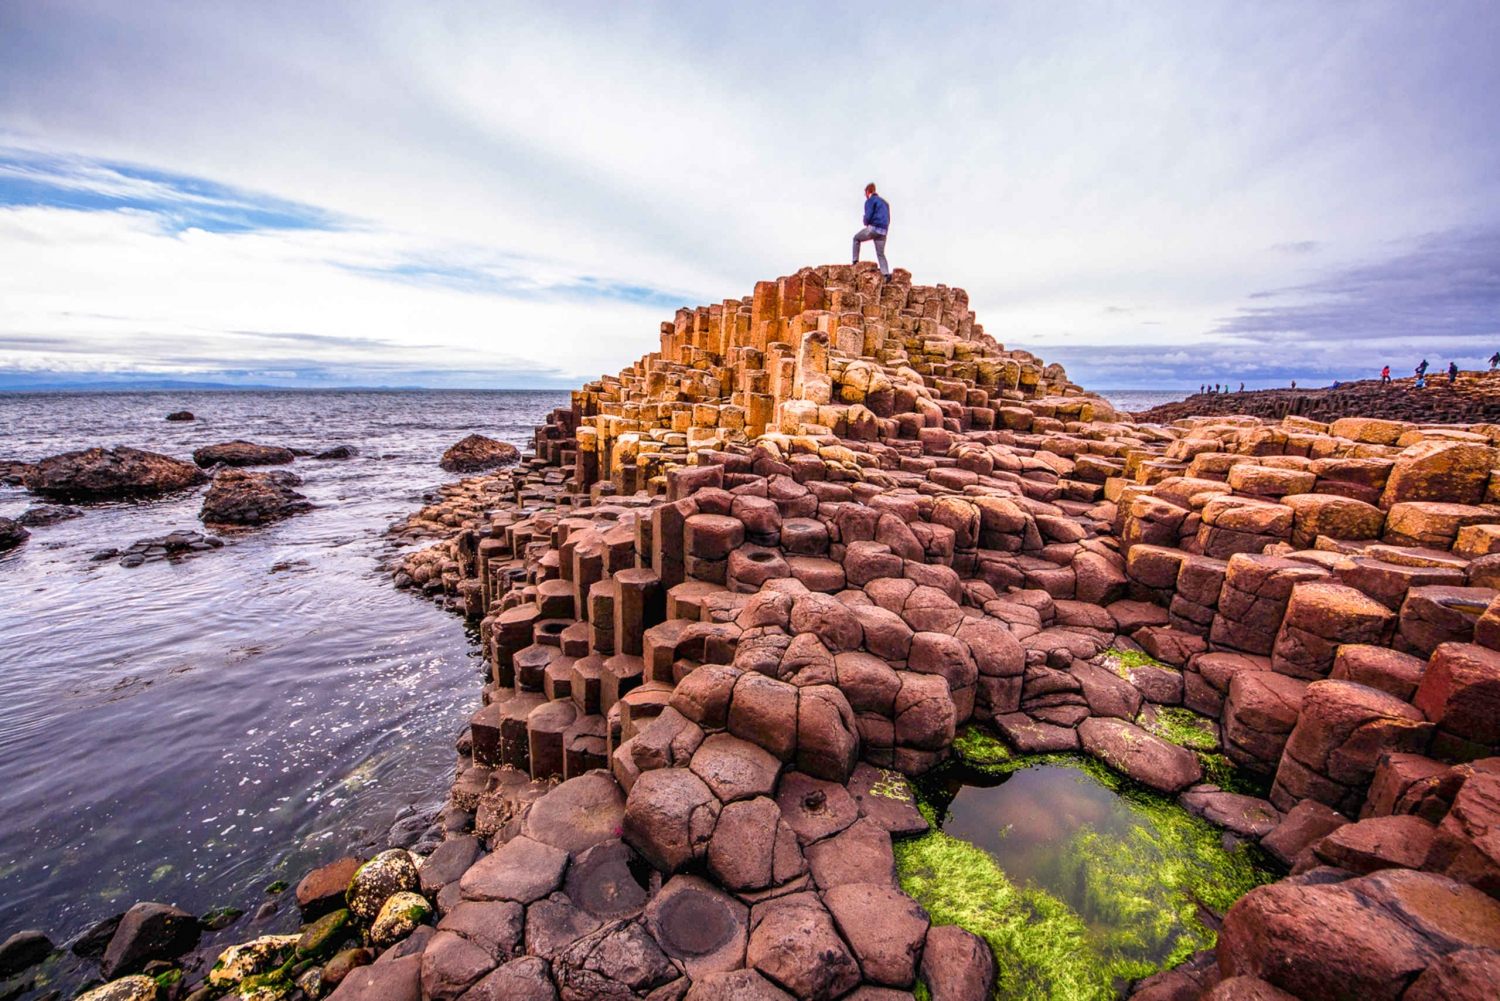 From Game of Thrones® and Giant's Causeway Tour